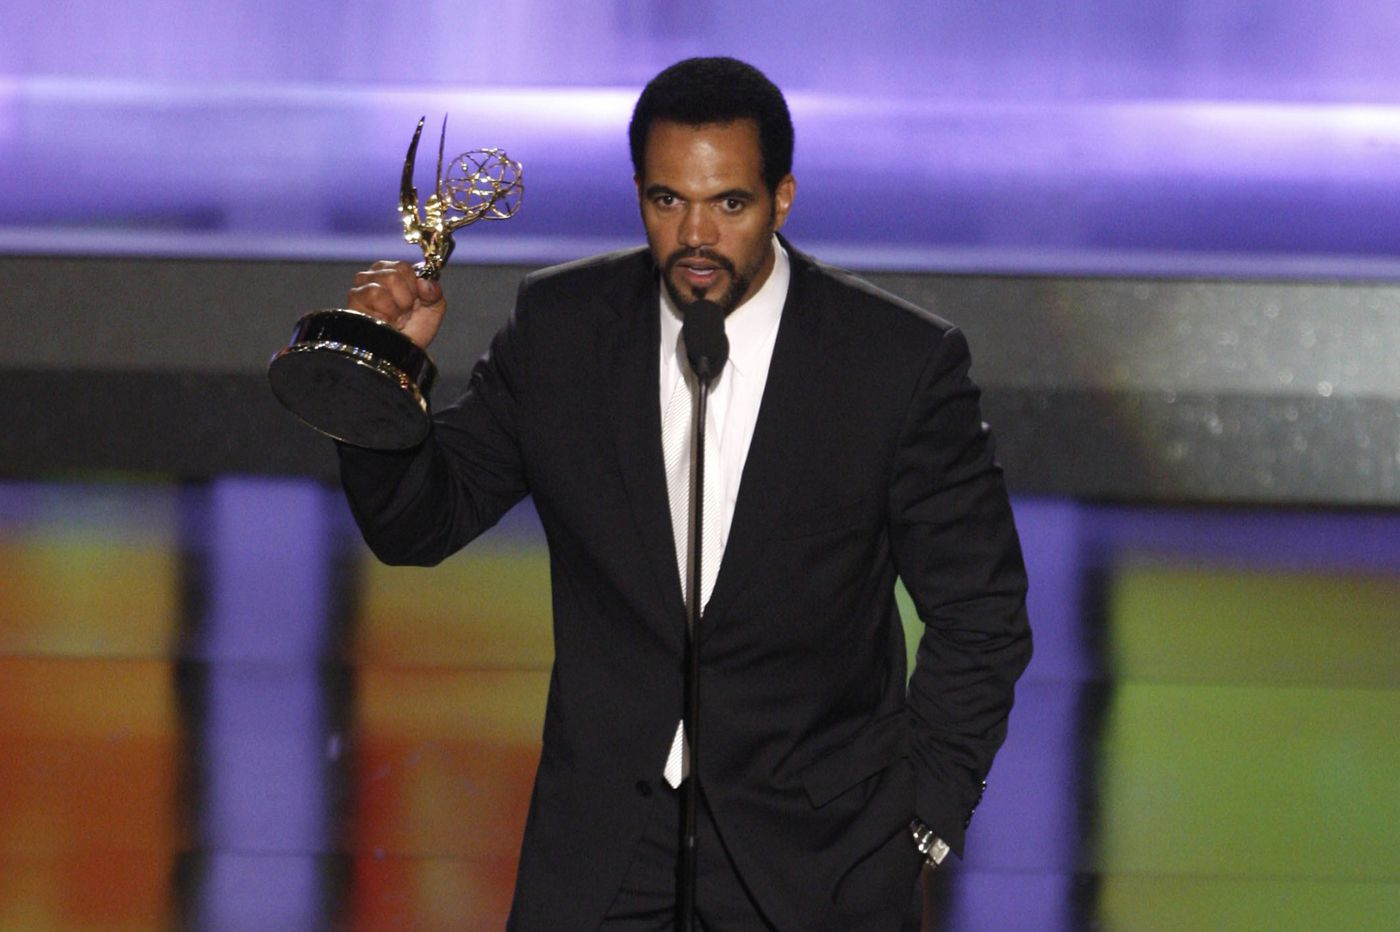 'The Young And The Restless' Announces Special Tribute For Kristoff St. John